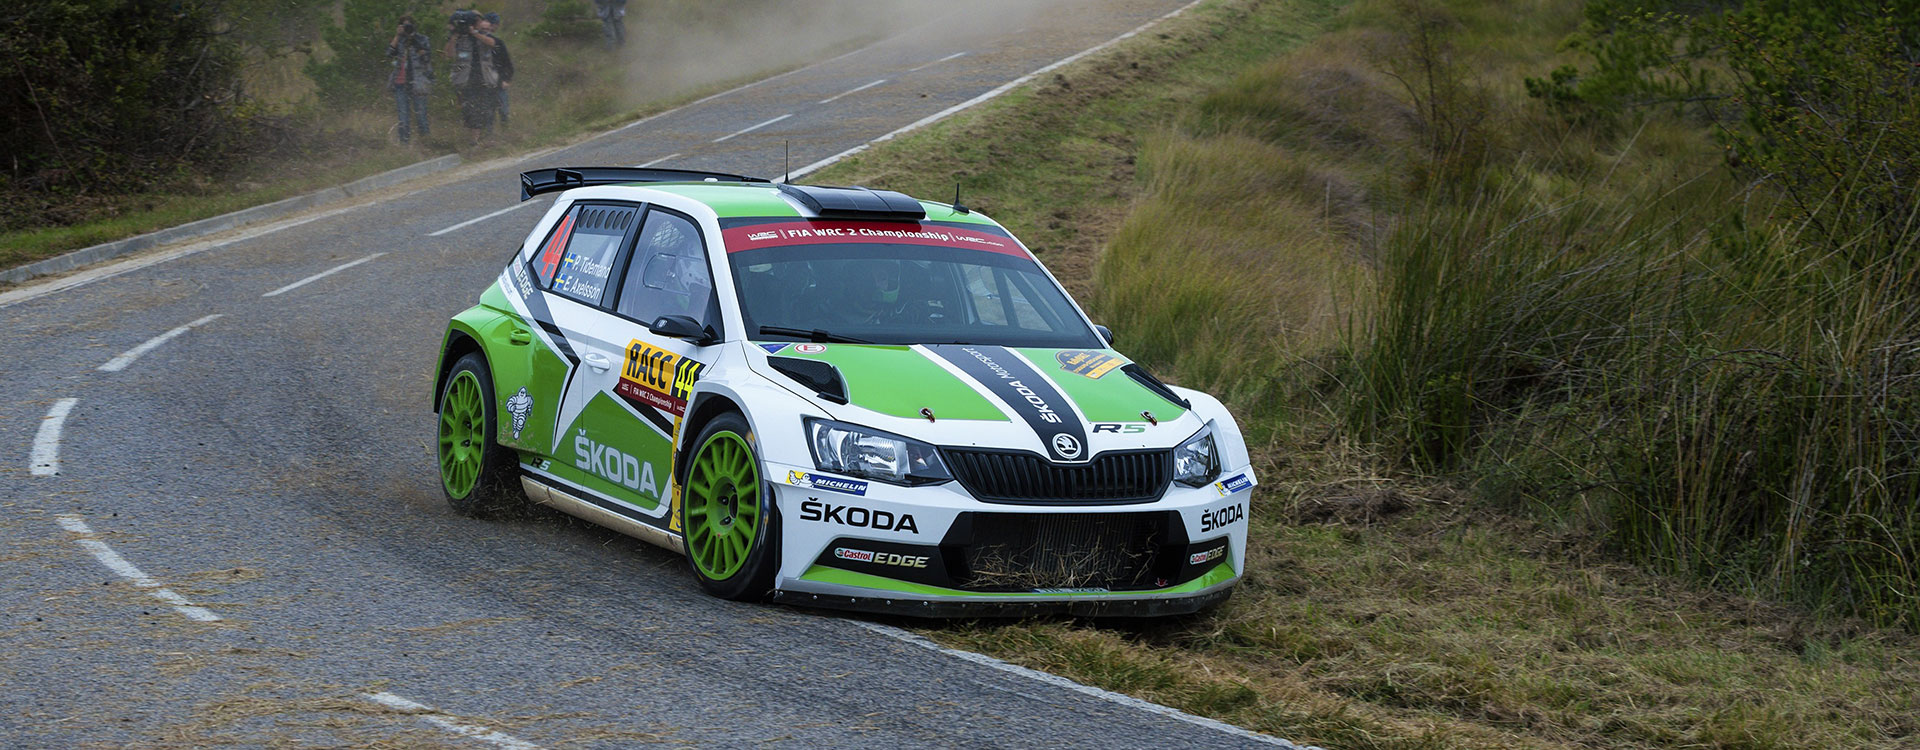 From the archives: ŠKODA took first four places in WRC2 at the Rally Spain 2015